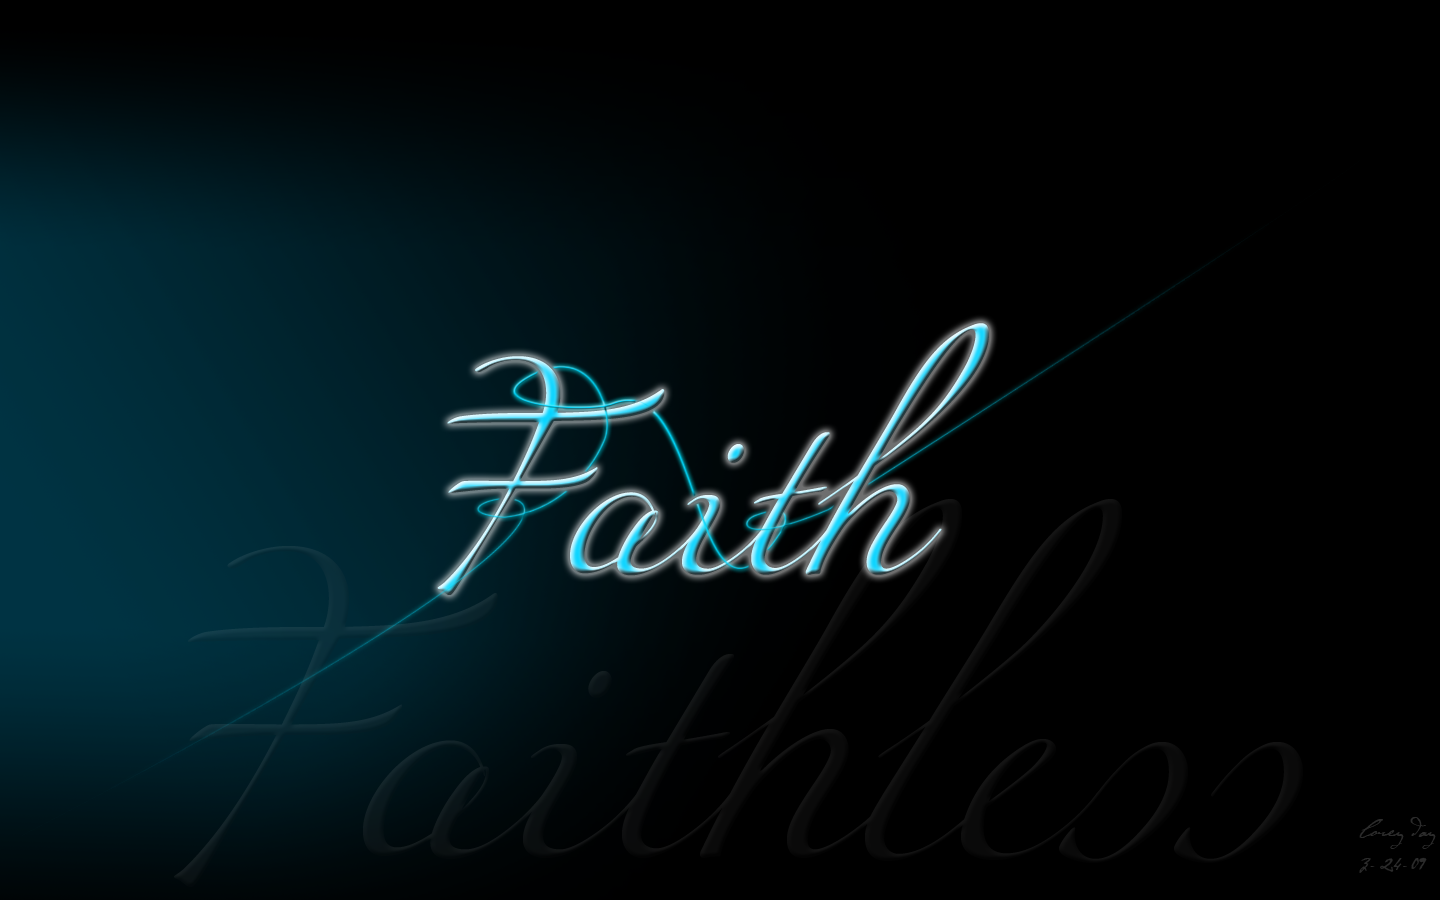 WNR.64WNR Faith Wallpapers - B.SCB